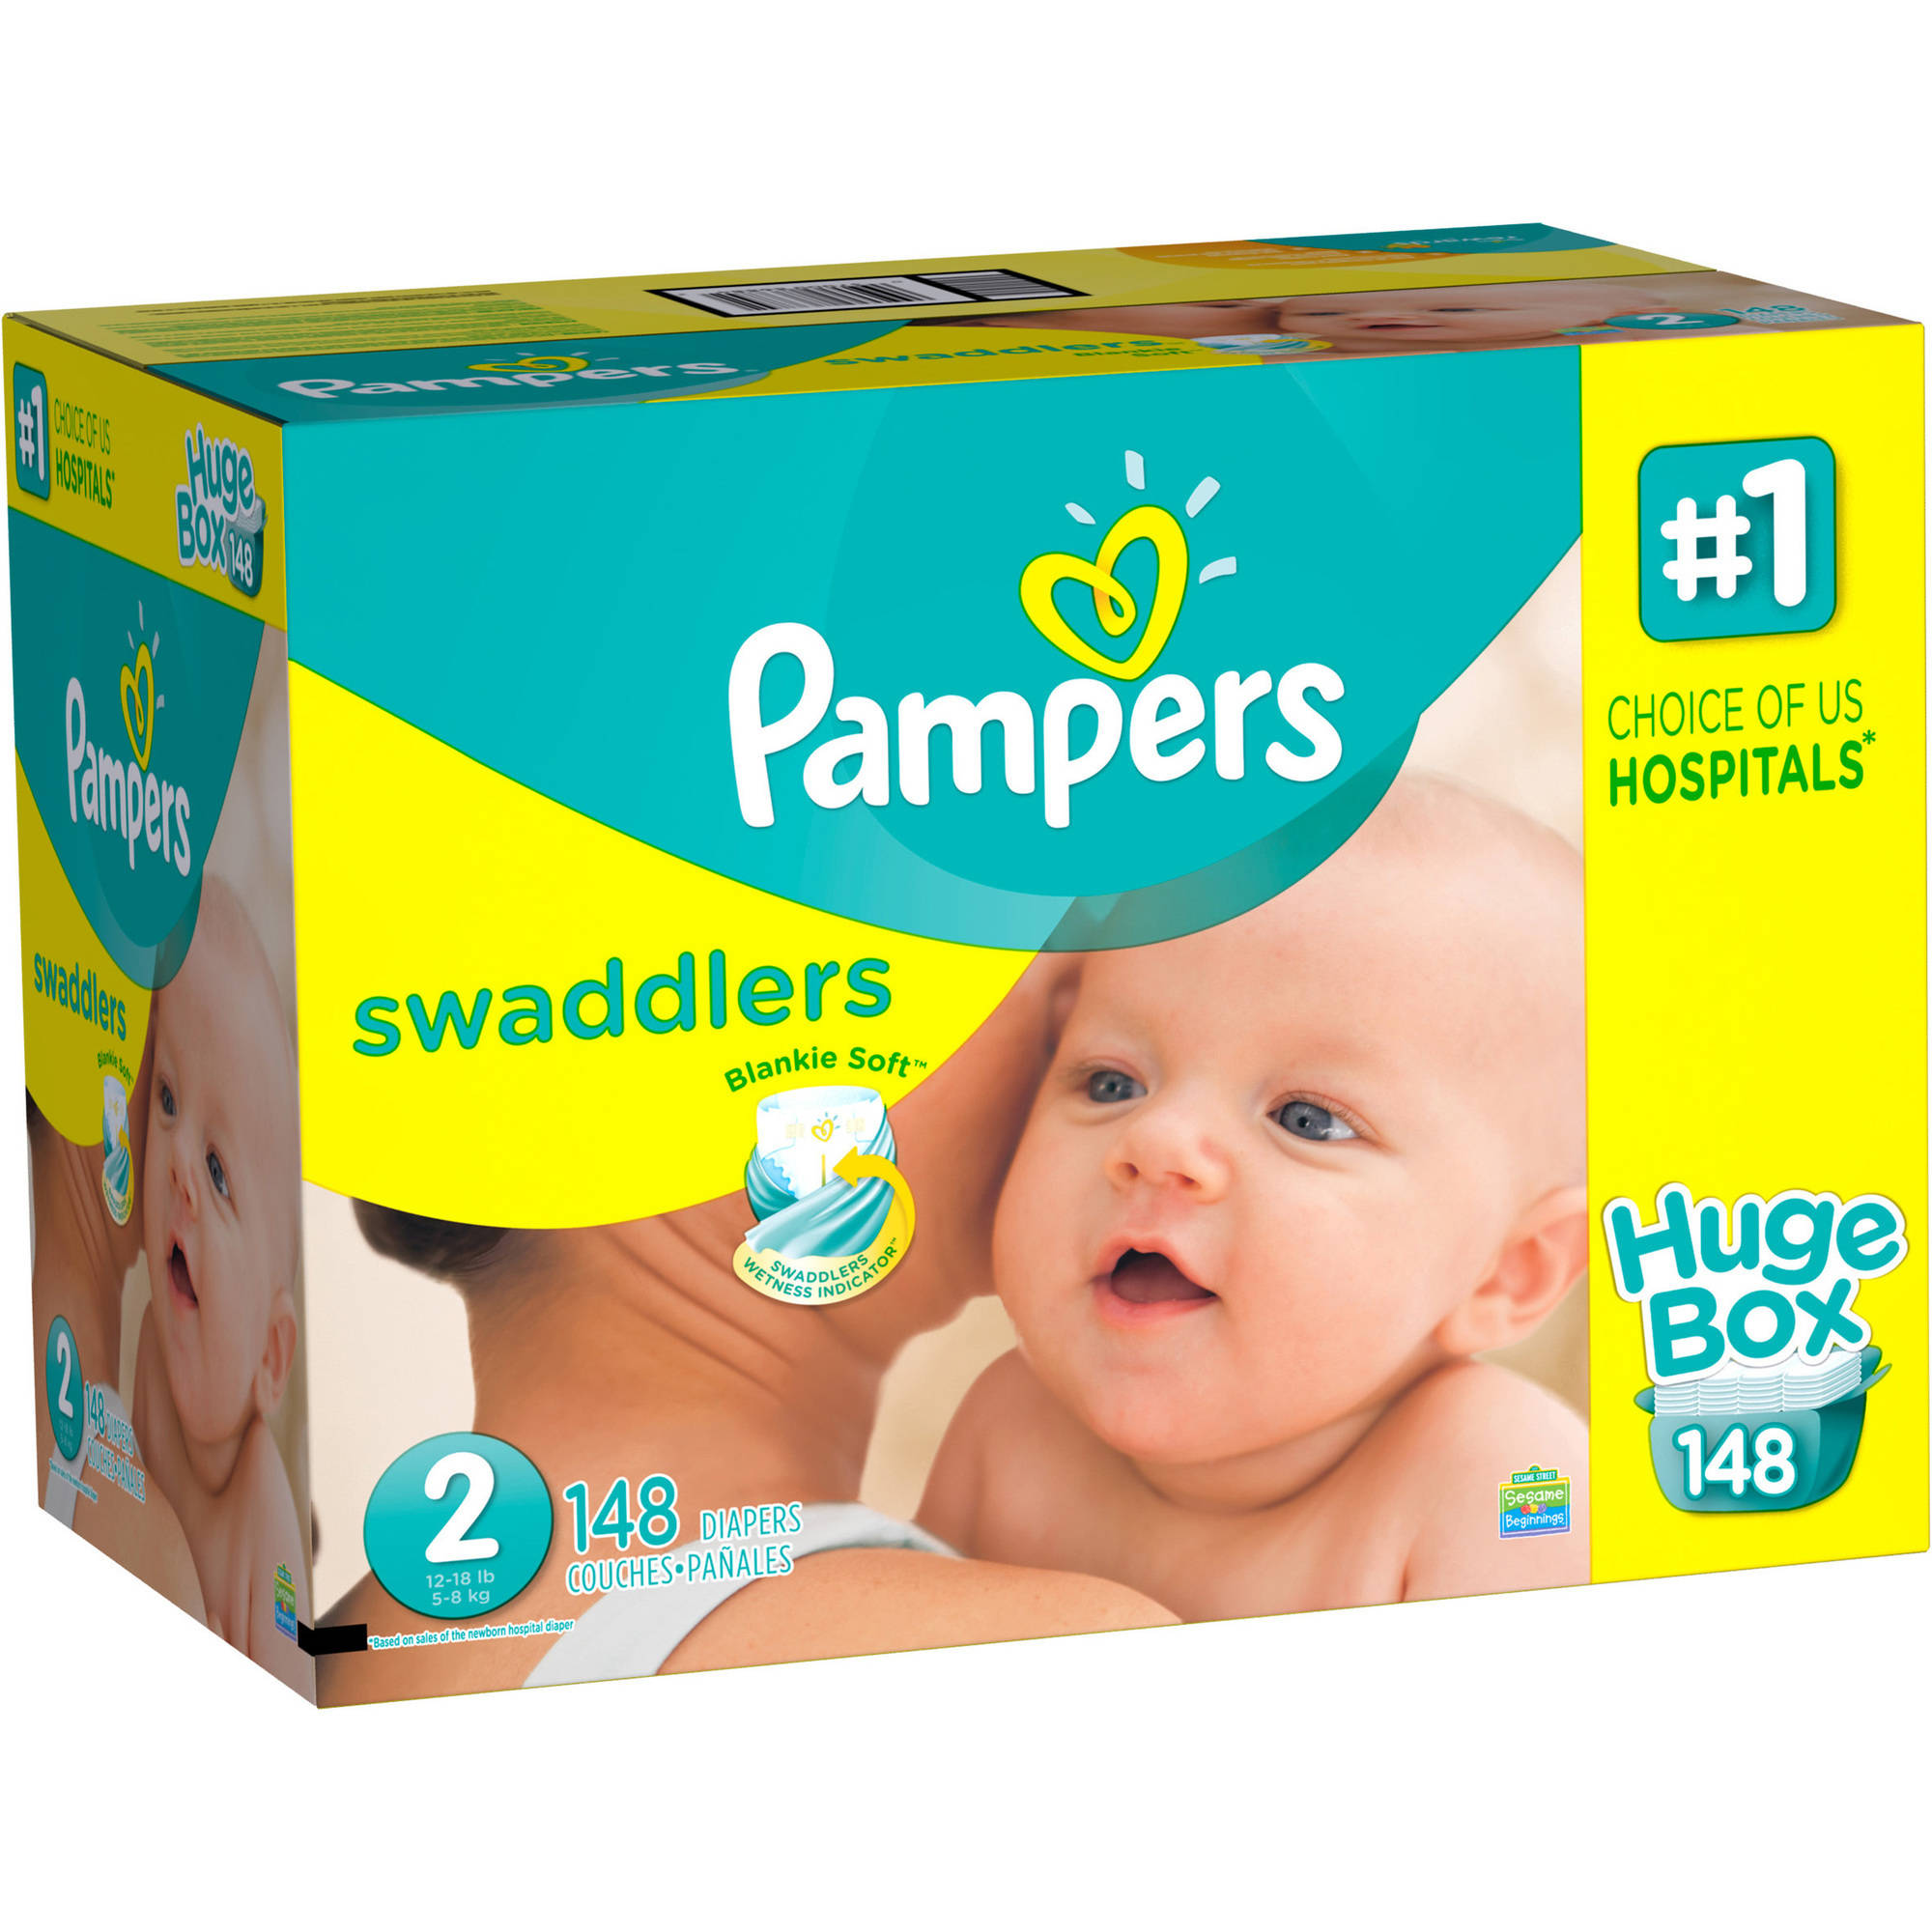 Pampers Swaddlers Diapers, Size 2, 148 Diapers - Walmart.com